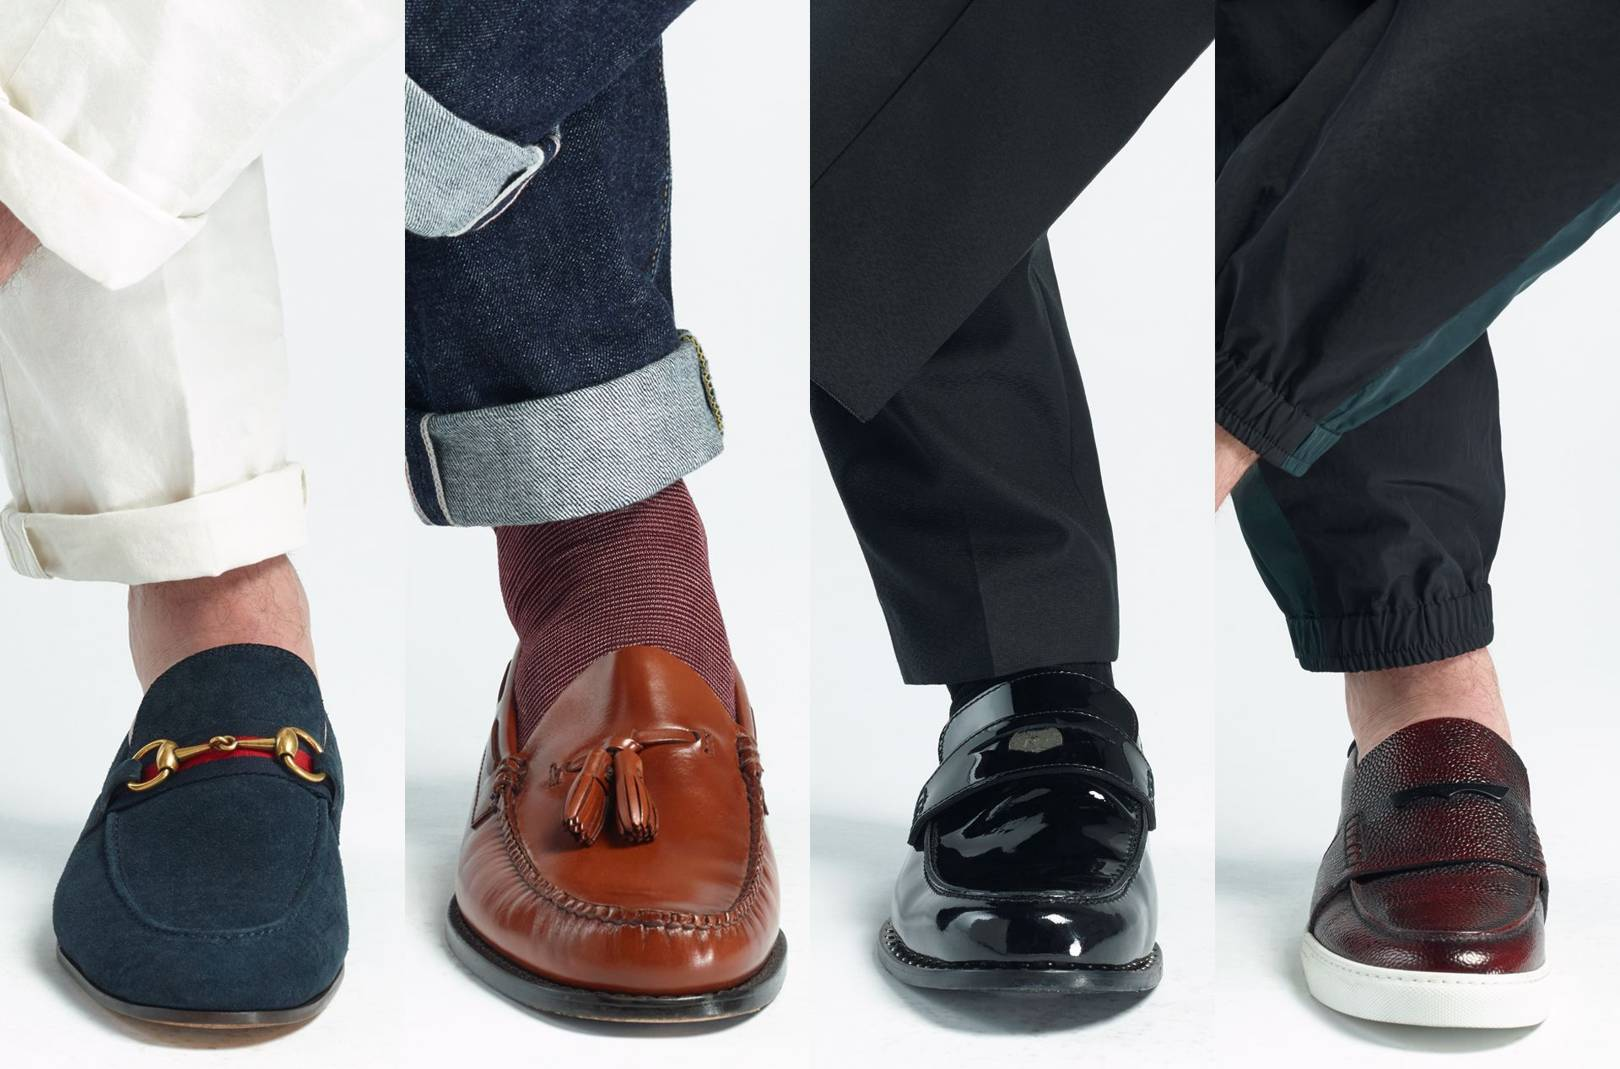 73f2a8b0c02 How to wear loafers